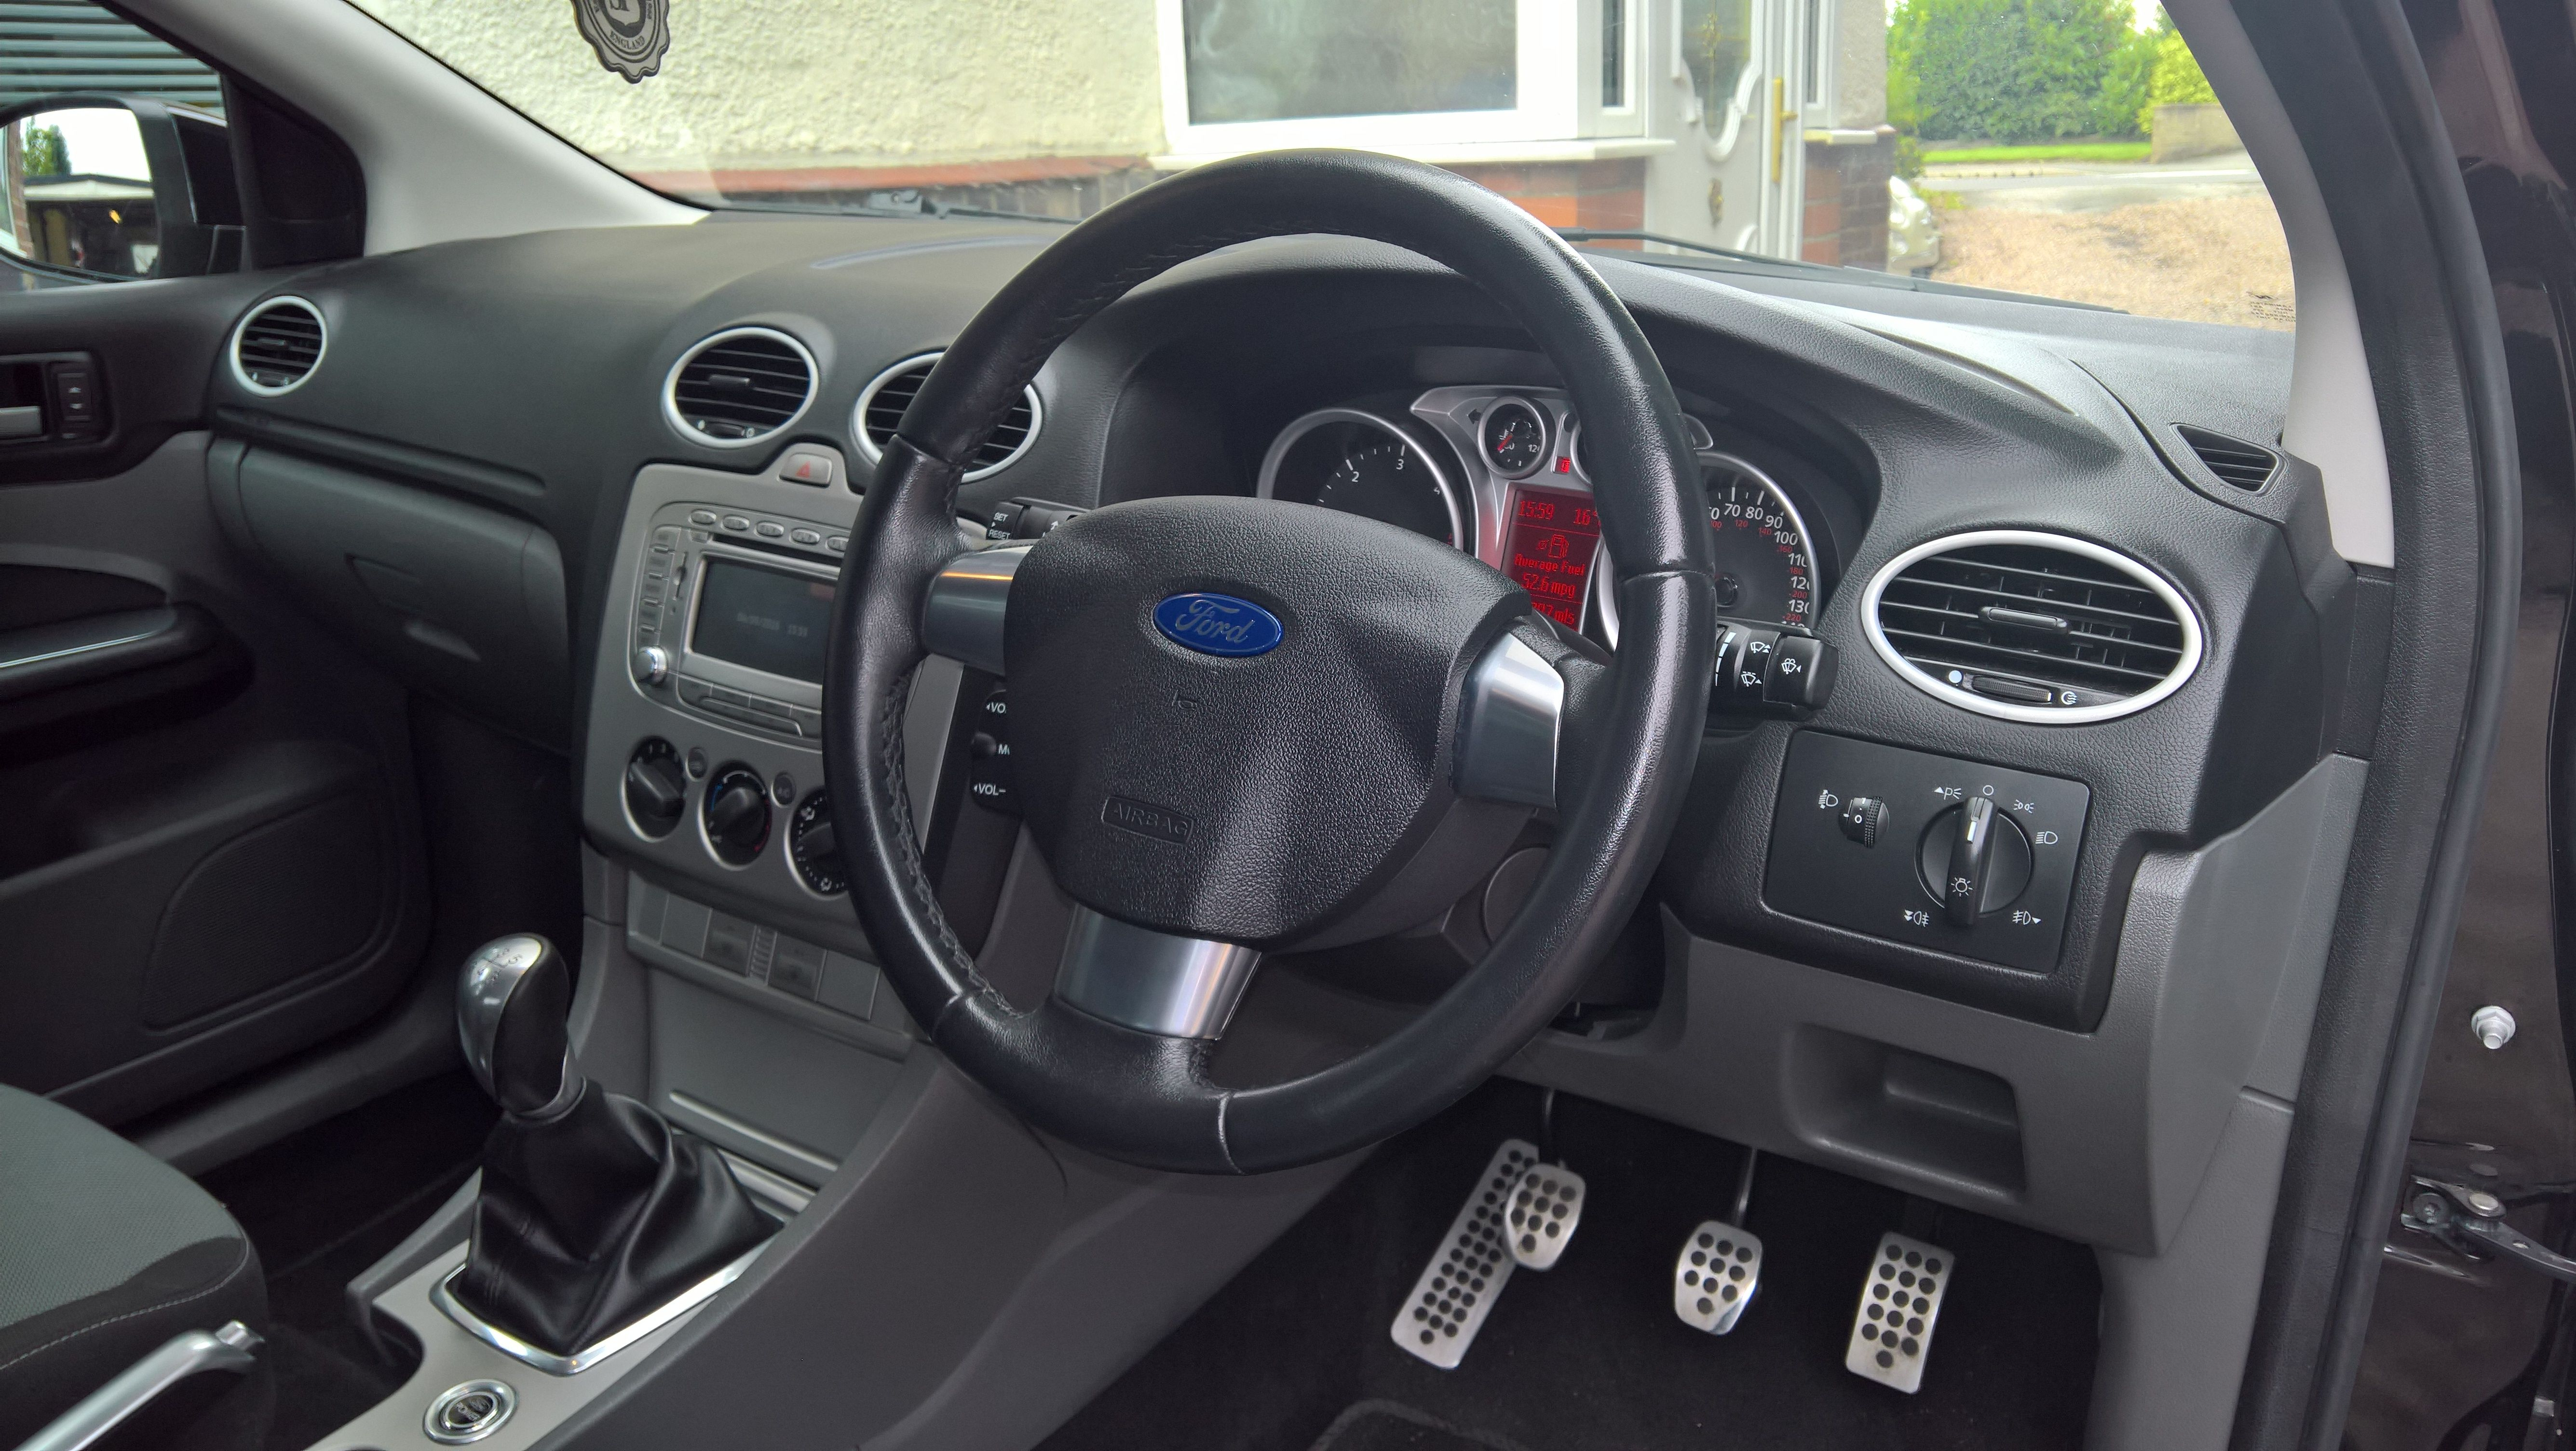 My Ford Focus Zetec S Dashboard Steering Wheel